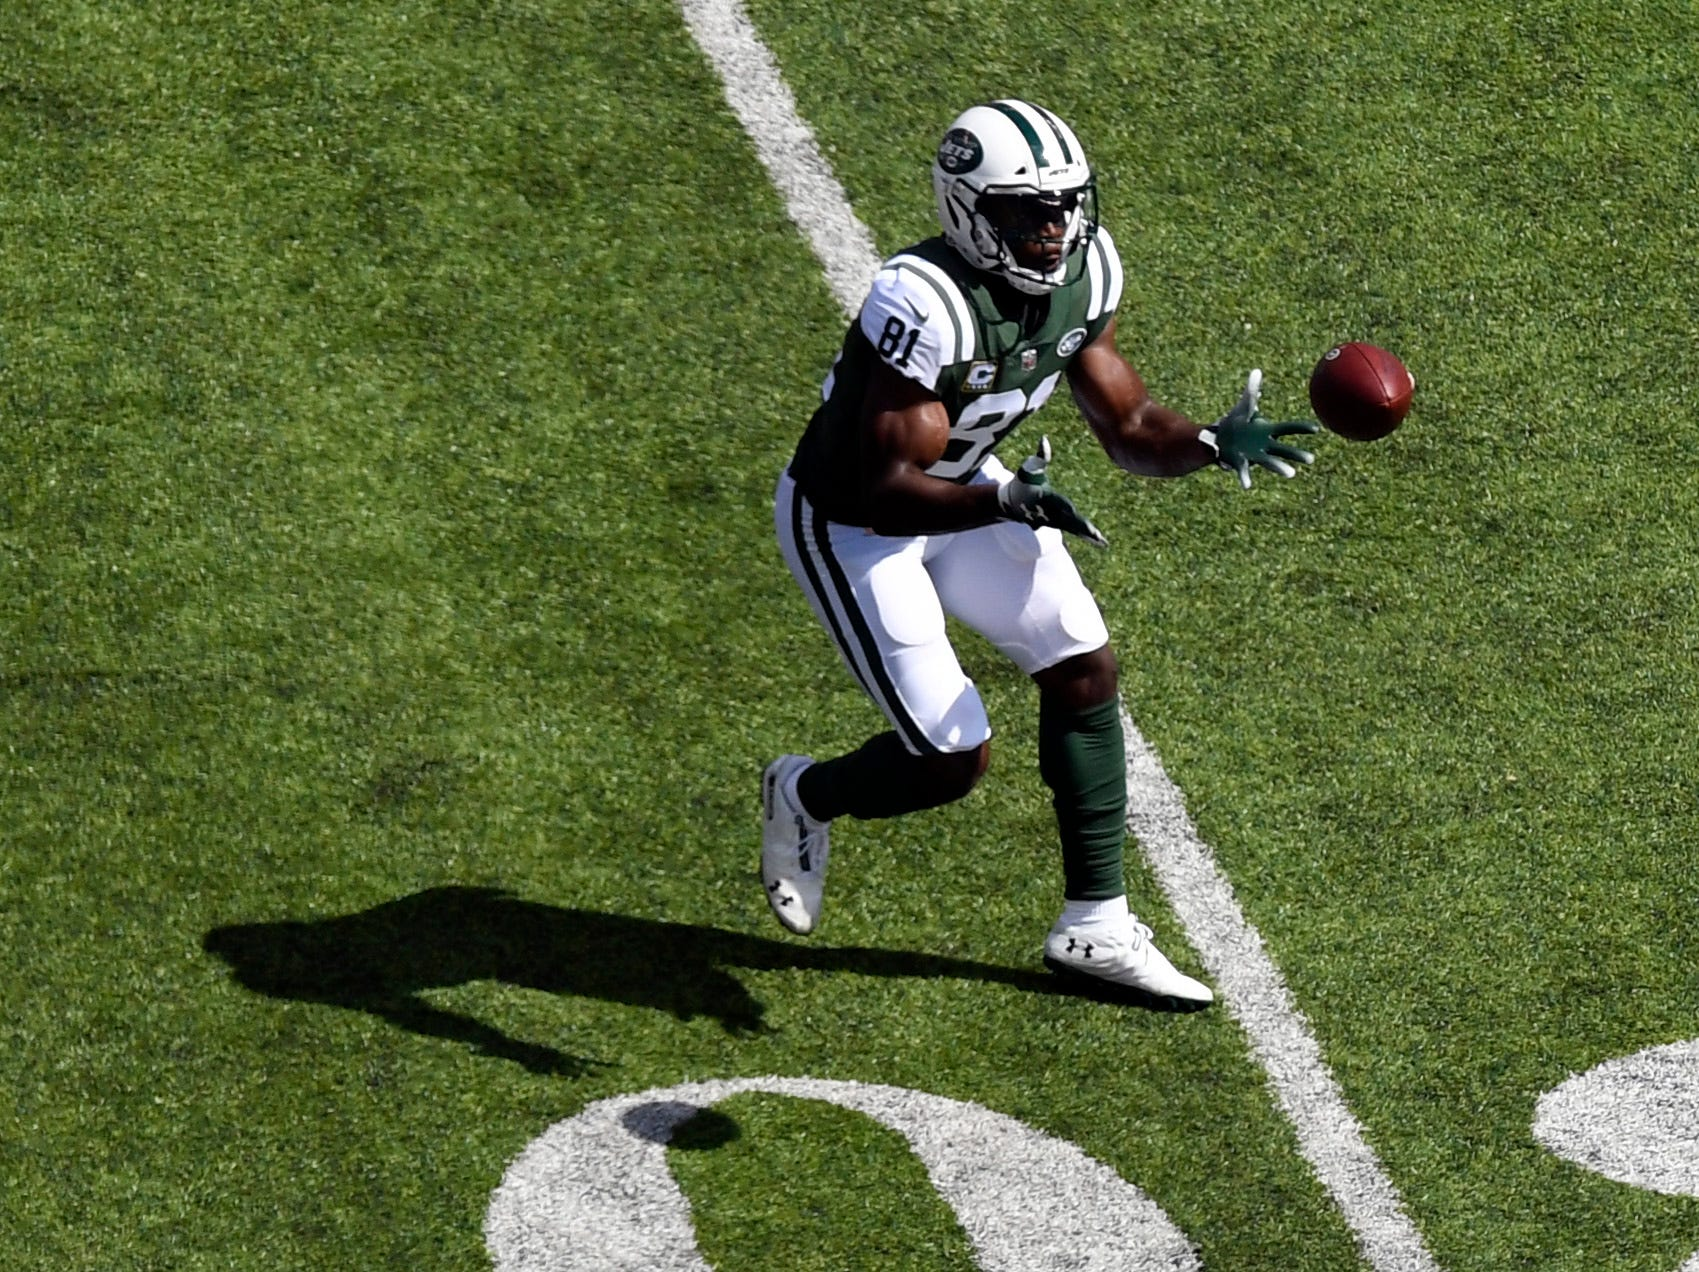 New York Jets wide receiver Quincy Enunwa (81) catches the ball against the Miami Dolphins in Week 2 at MetLife Stadium in East Rutherford, NJ on Sunday, September 16, 2018.